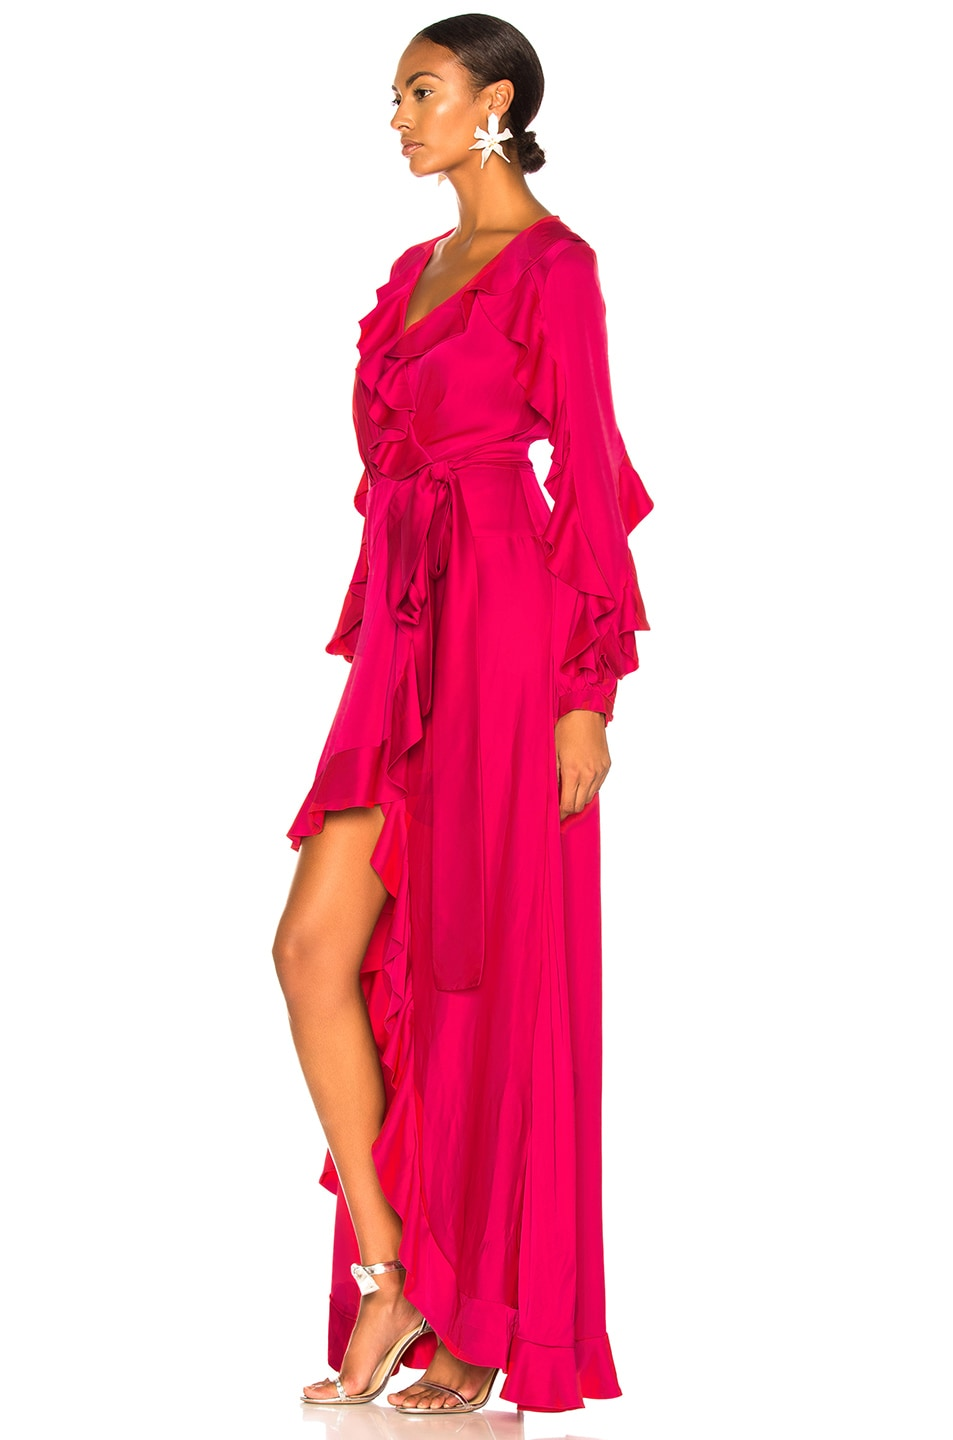 Image 3 of PatBO Ruffle Sleeve Maxi Wrap Dress in Hot Pink